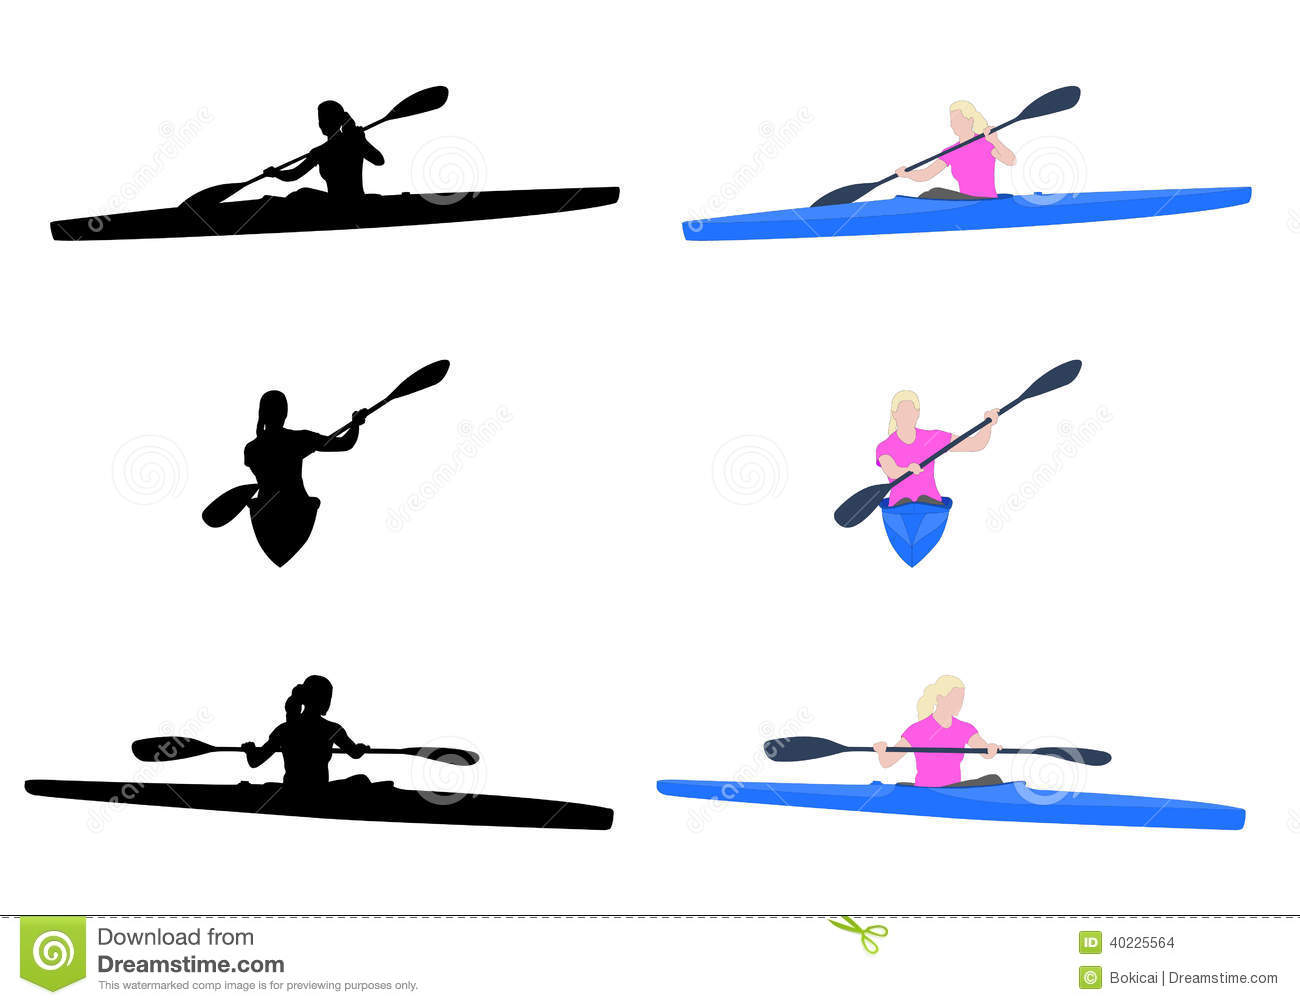 Woman Kayaking Stock Vector Illustration Of Isolated